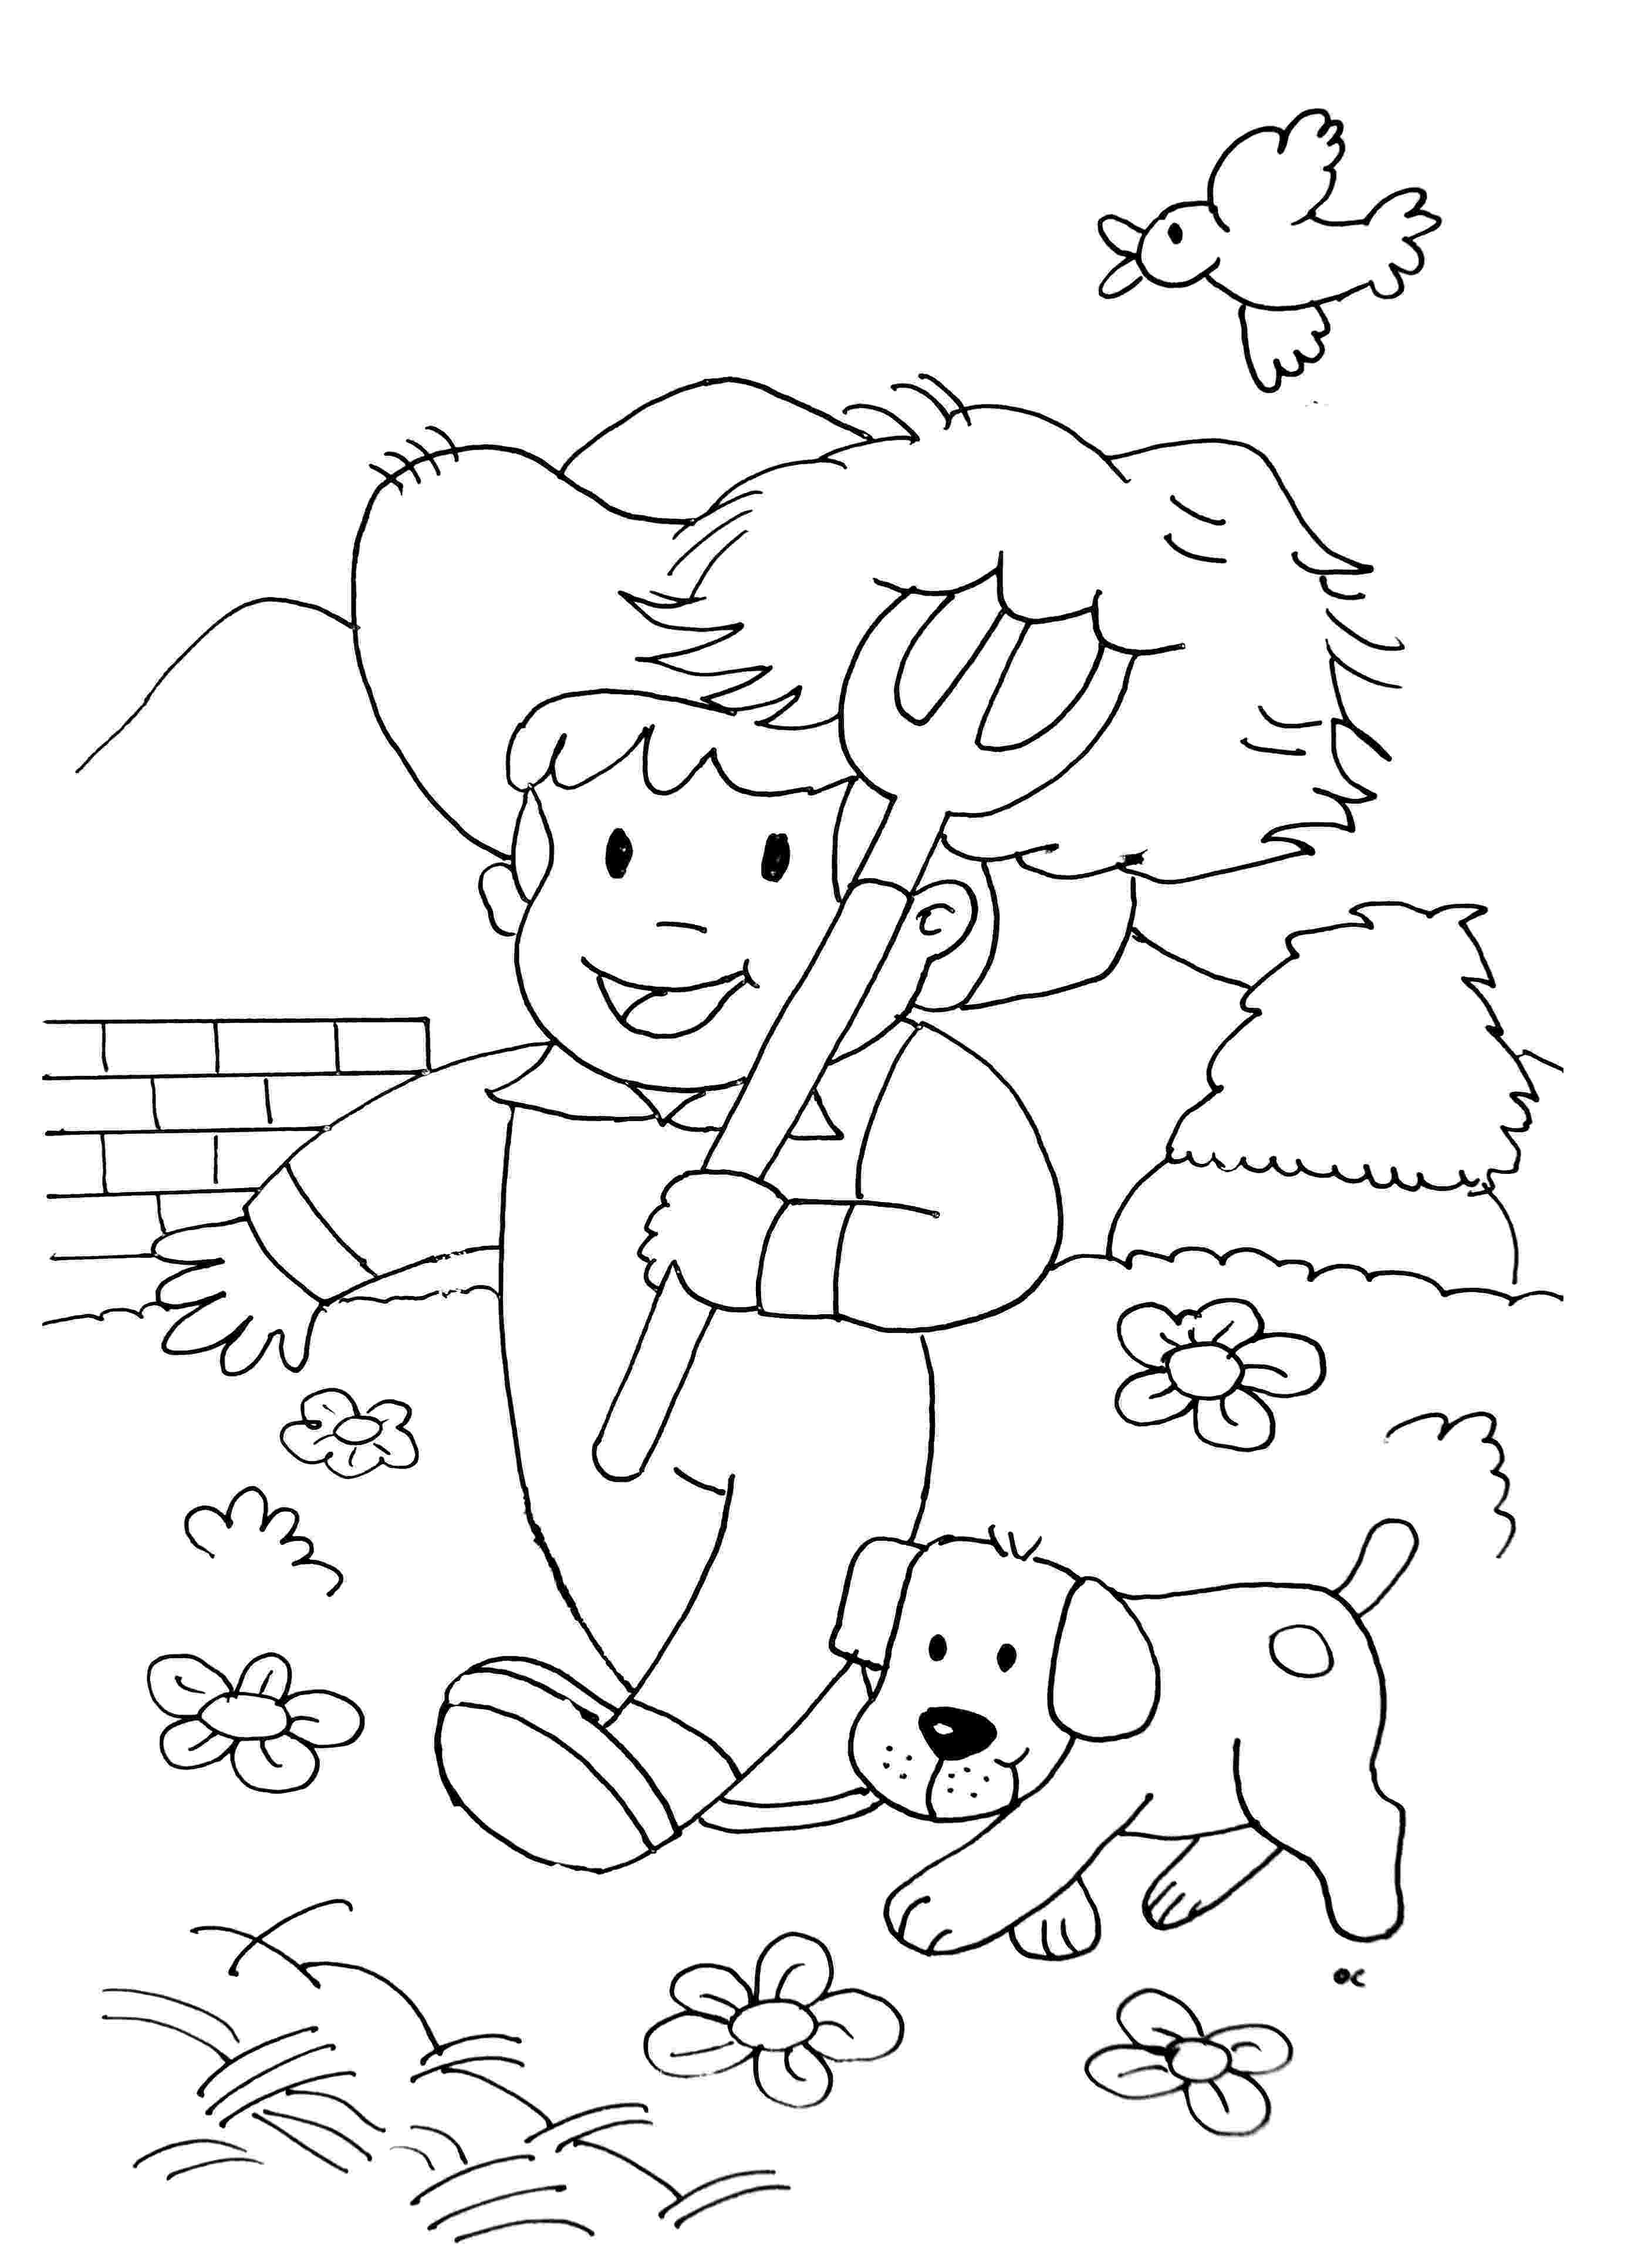 farmer coloring sheet farmer coloring pages to download and print for free farmer coloring sheet